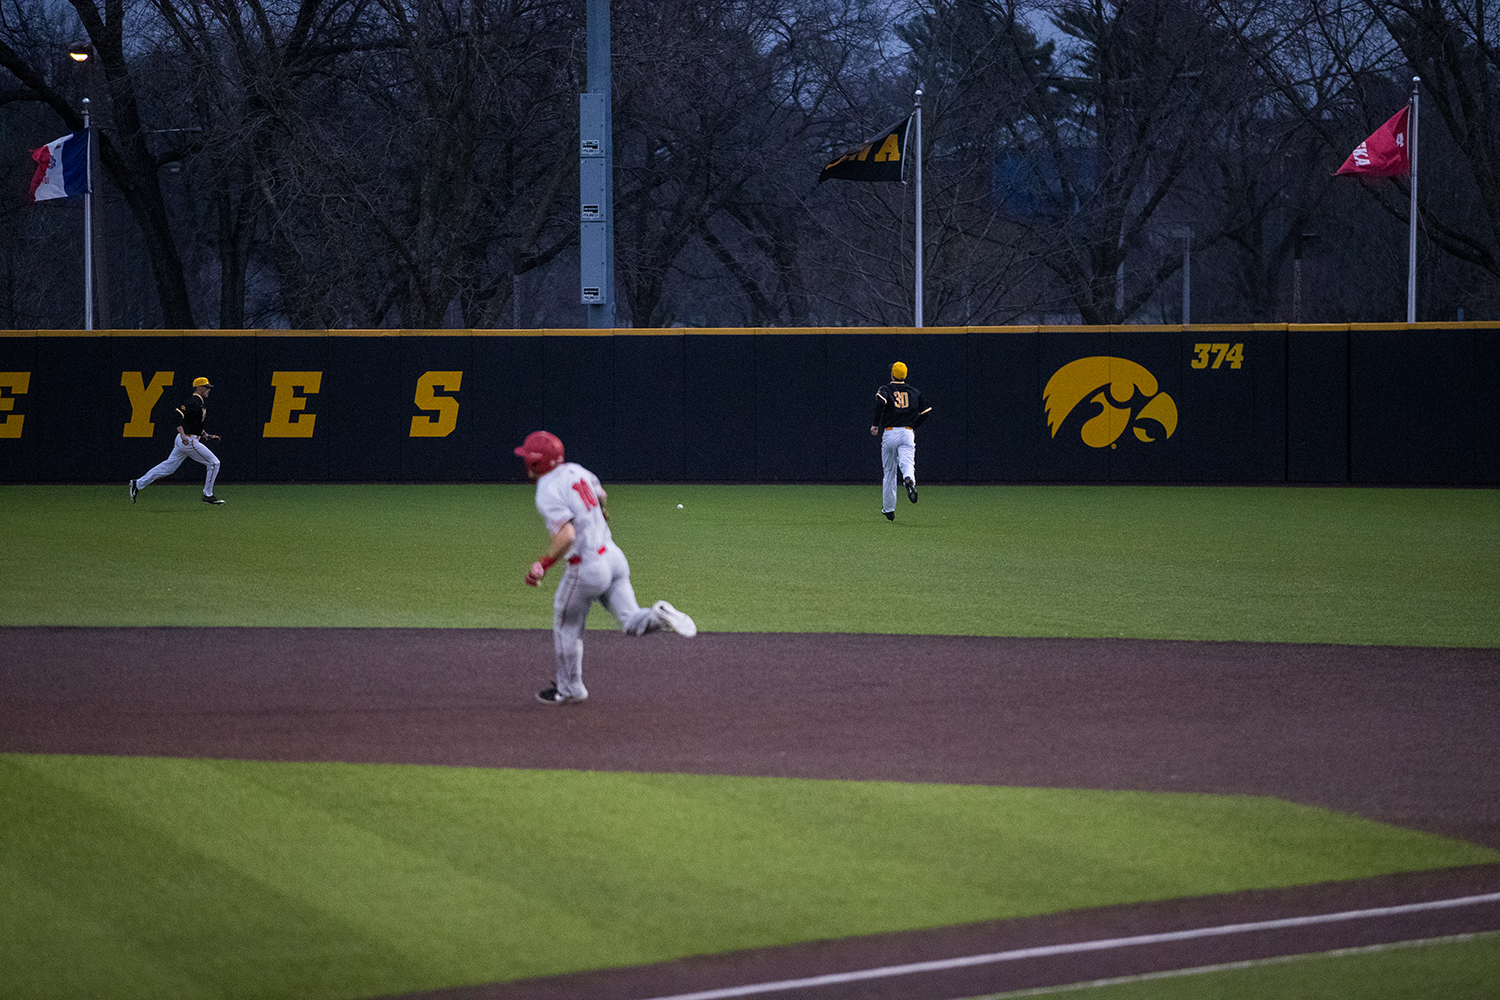 Iowa%27s+Conner+McCaffery+funs+in+the+outfield+to+get+the+ball+during+a+baseball+game+against+Illinois+State+on+Wednesday%2C+Apr.+3%2C+2019.+The+Hawkeyes+lost+to+the+Redbirds+11-6.+%28Roman+Slabach%2FThe+Daily+Iowan%29